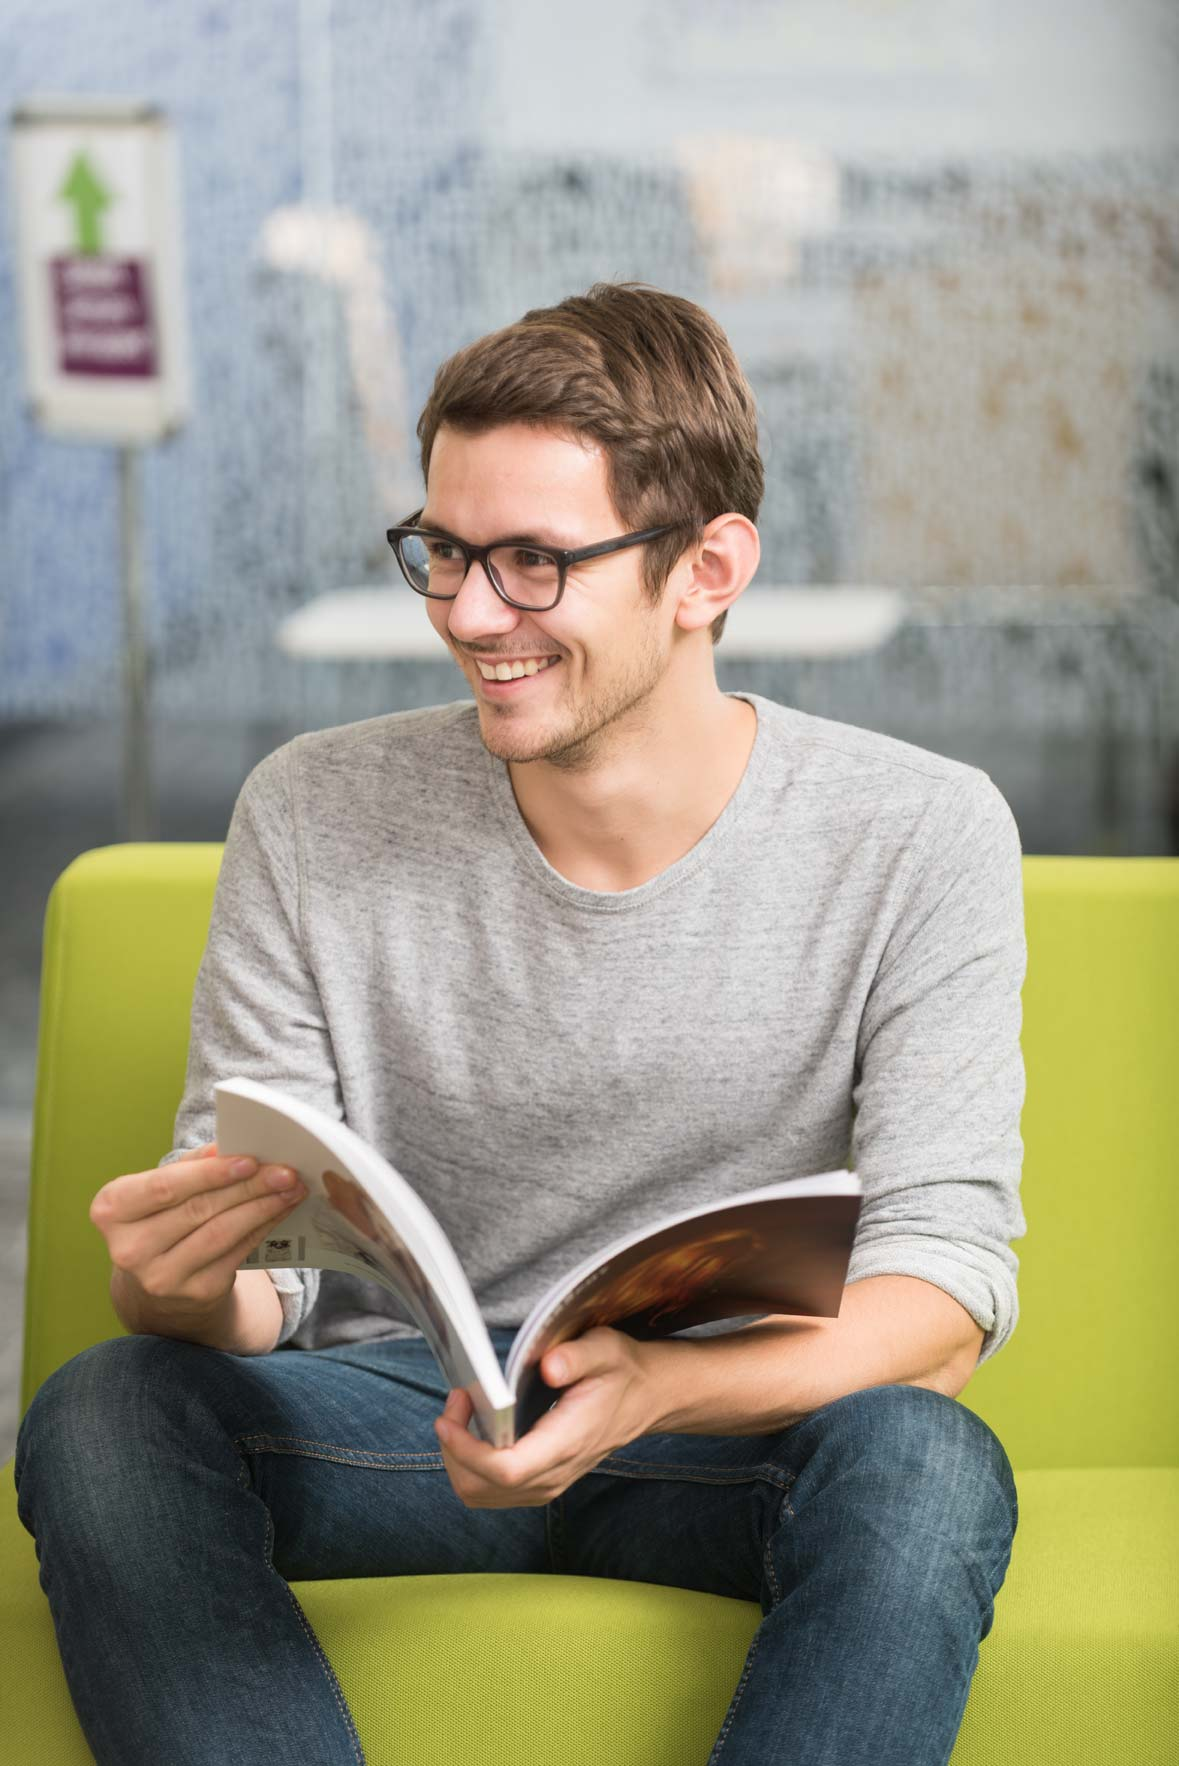 A student wearing glasses smiles while holding a magazine